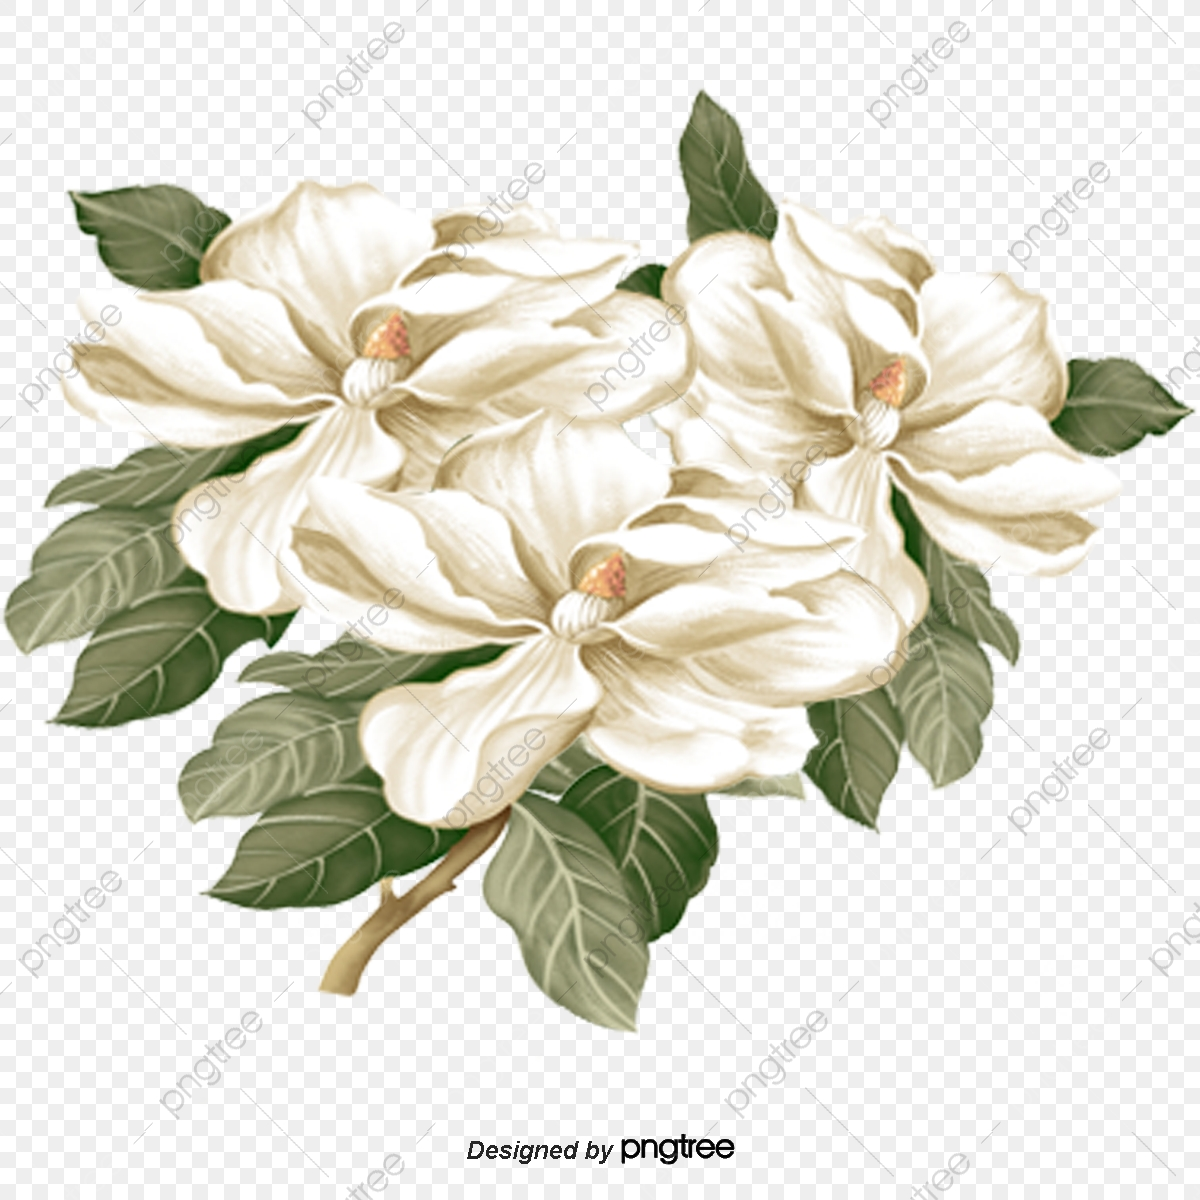 White Peony, Peony, National Flower, White Peonies PNG Transparent.